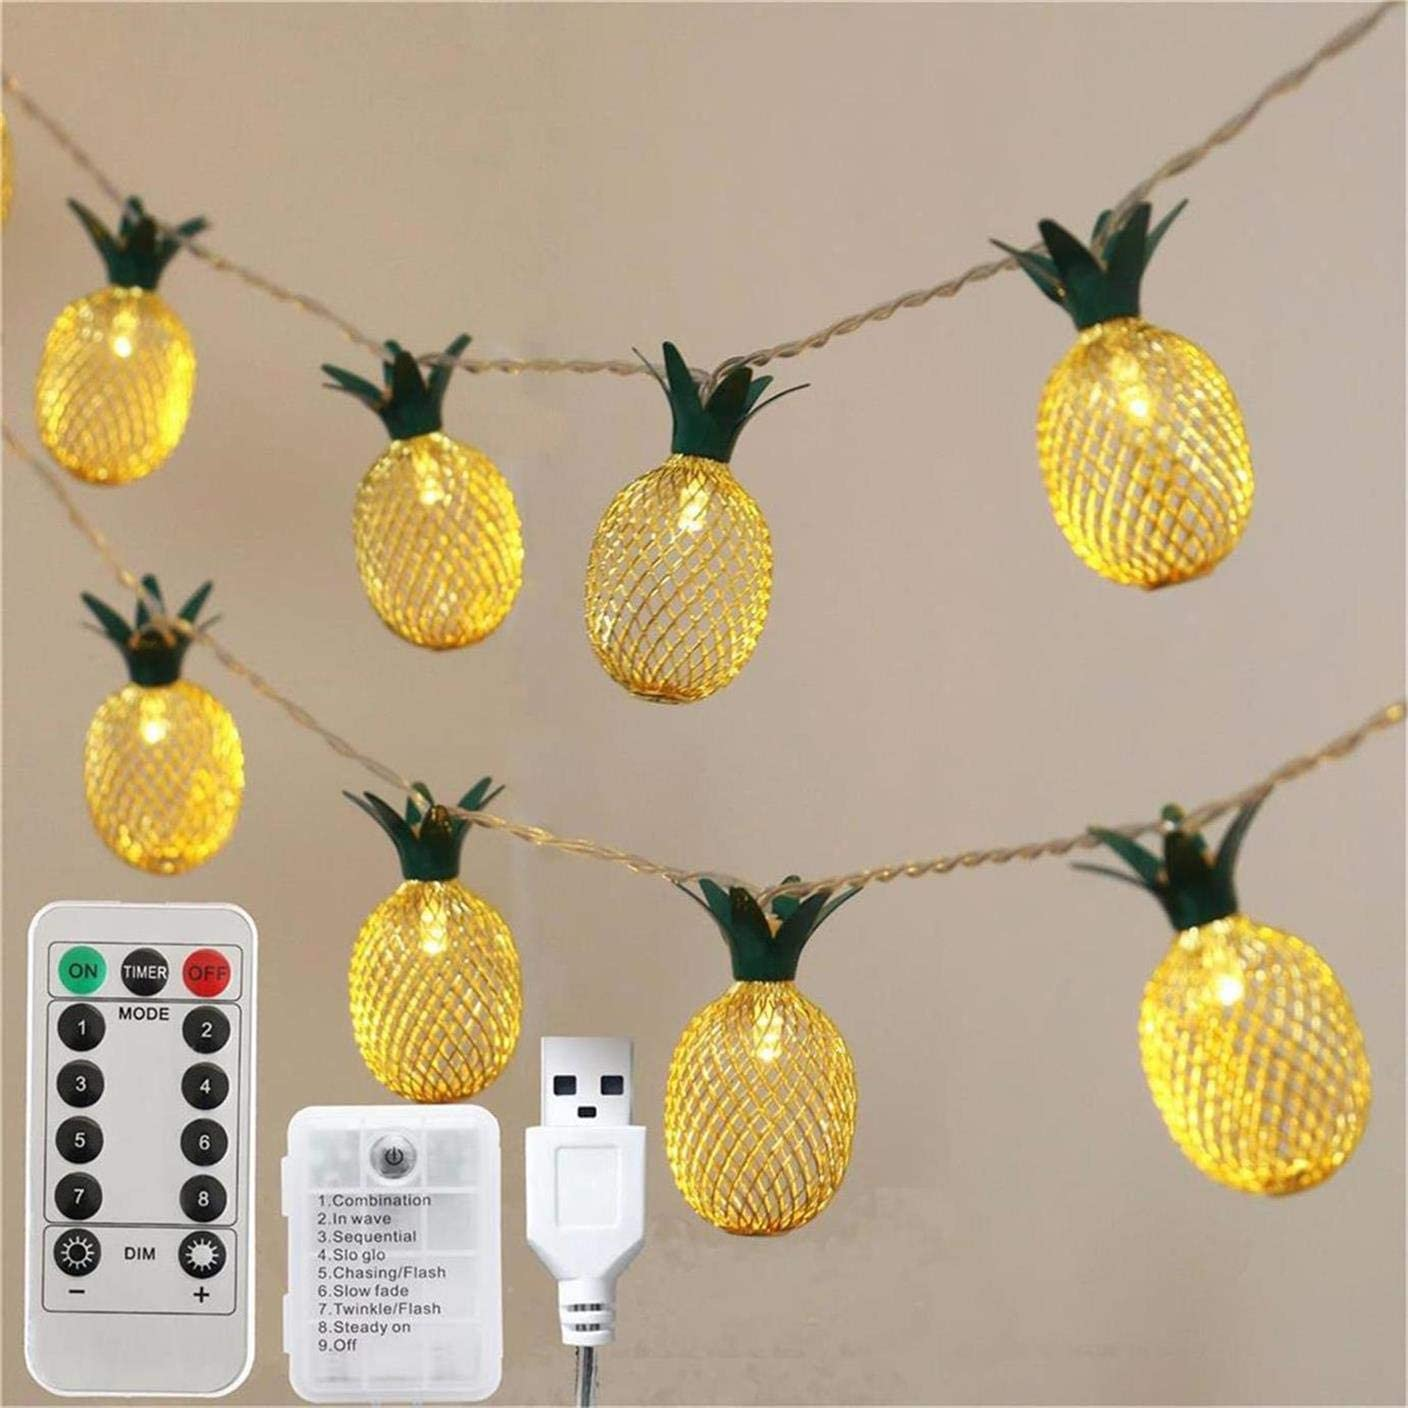 YXYQR 10ft 20 Pineapple LED String Lights Battery Operated/USB Plug with Remote Timer Indoor Outdoor Fruit Fairy Mood Lights for Home Porch Christmas Bedroom Garden Party (Warm White)